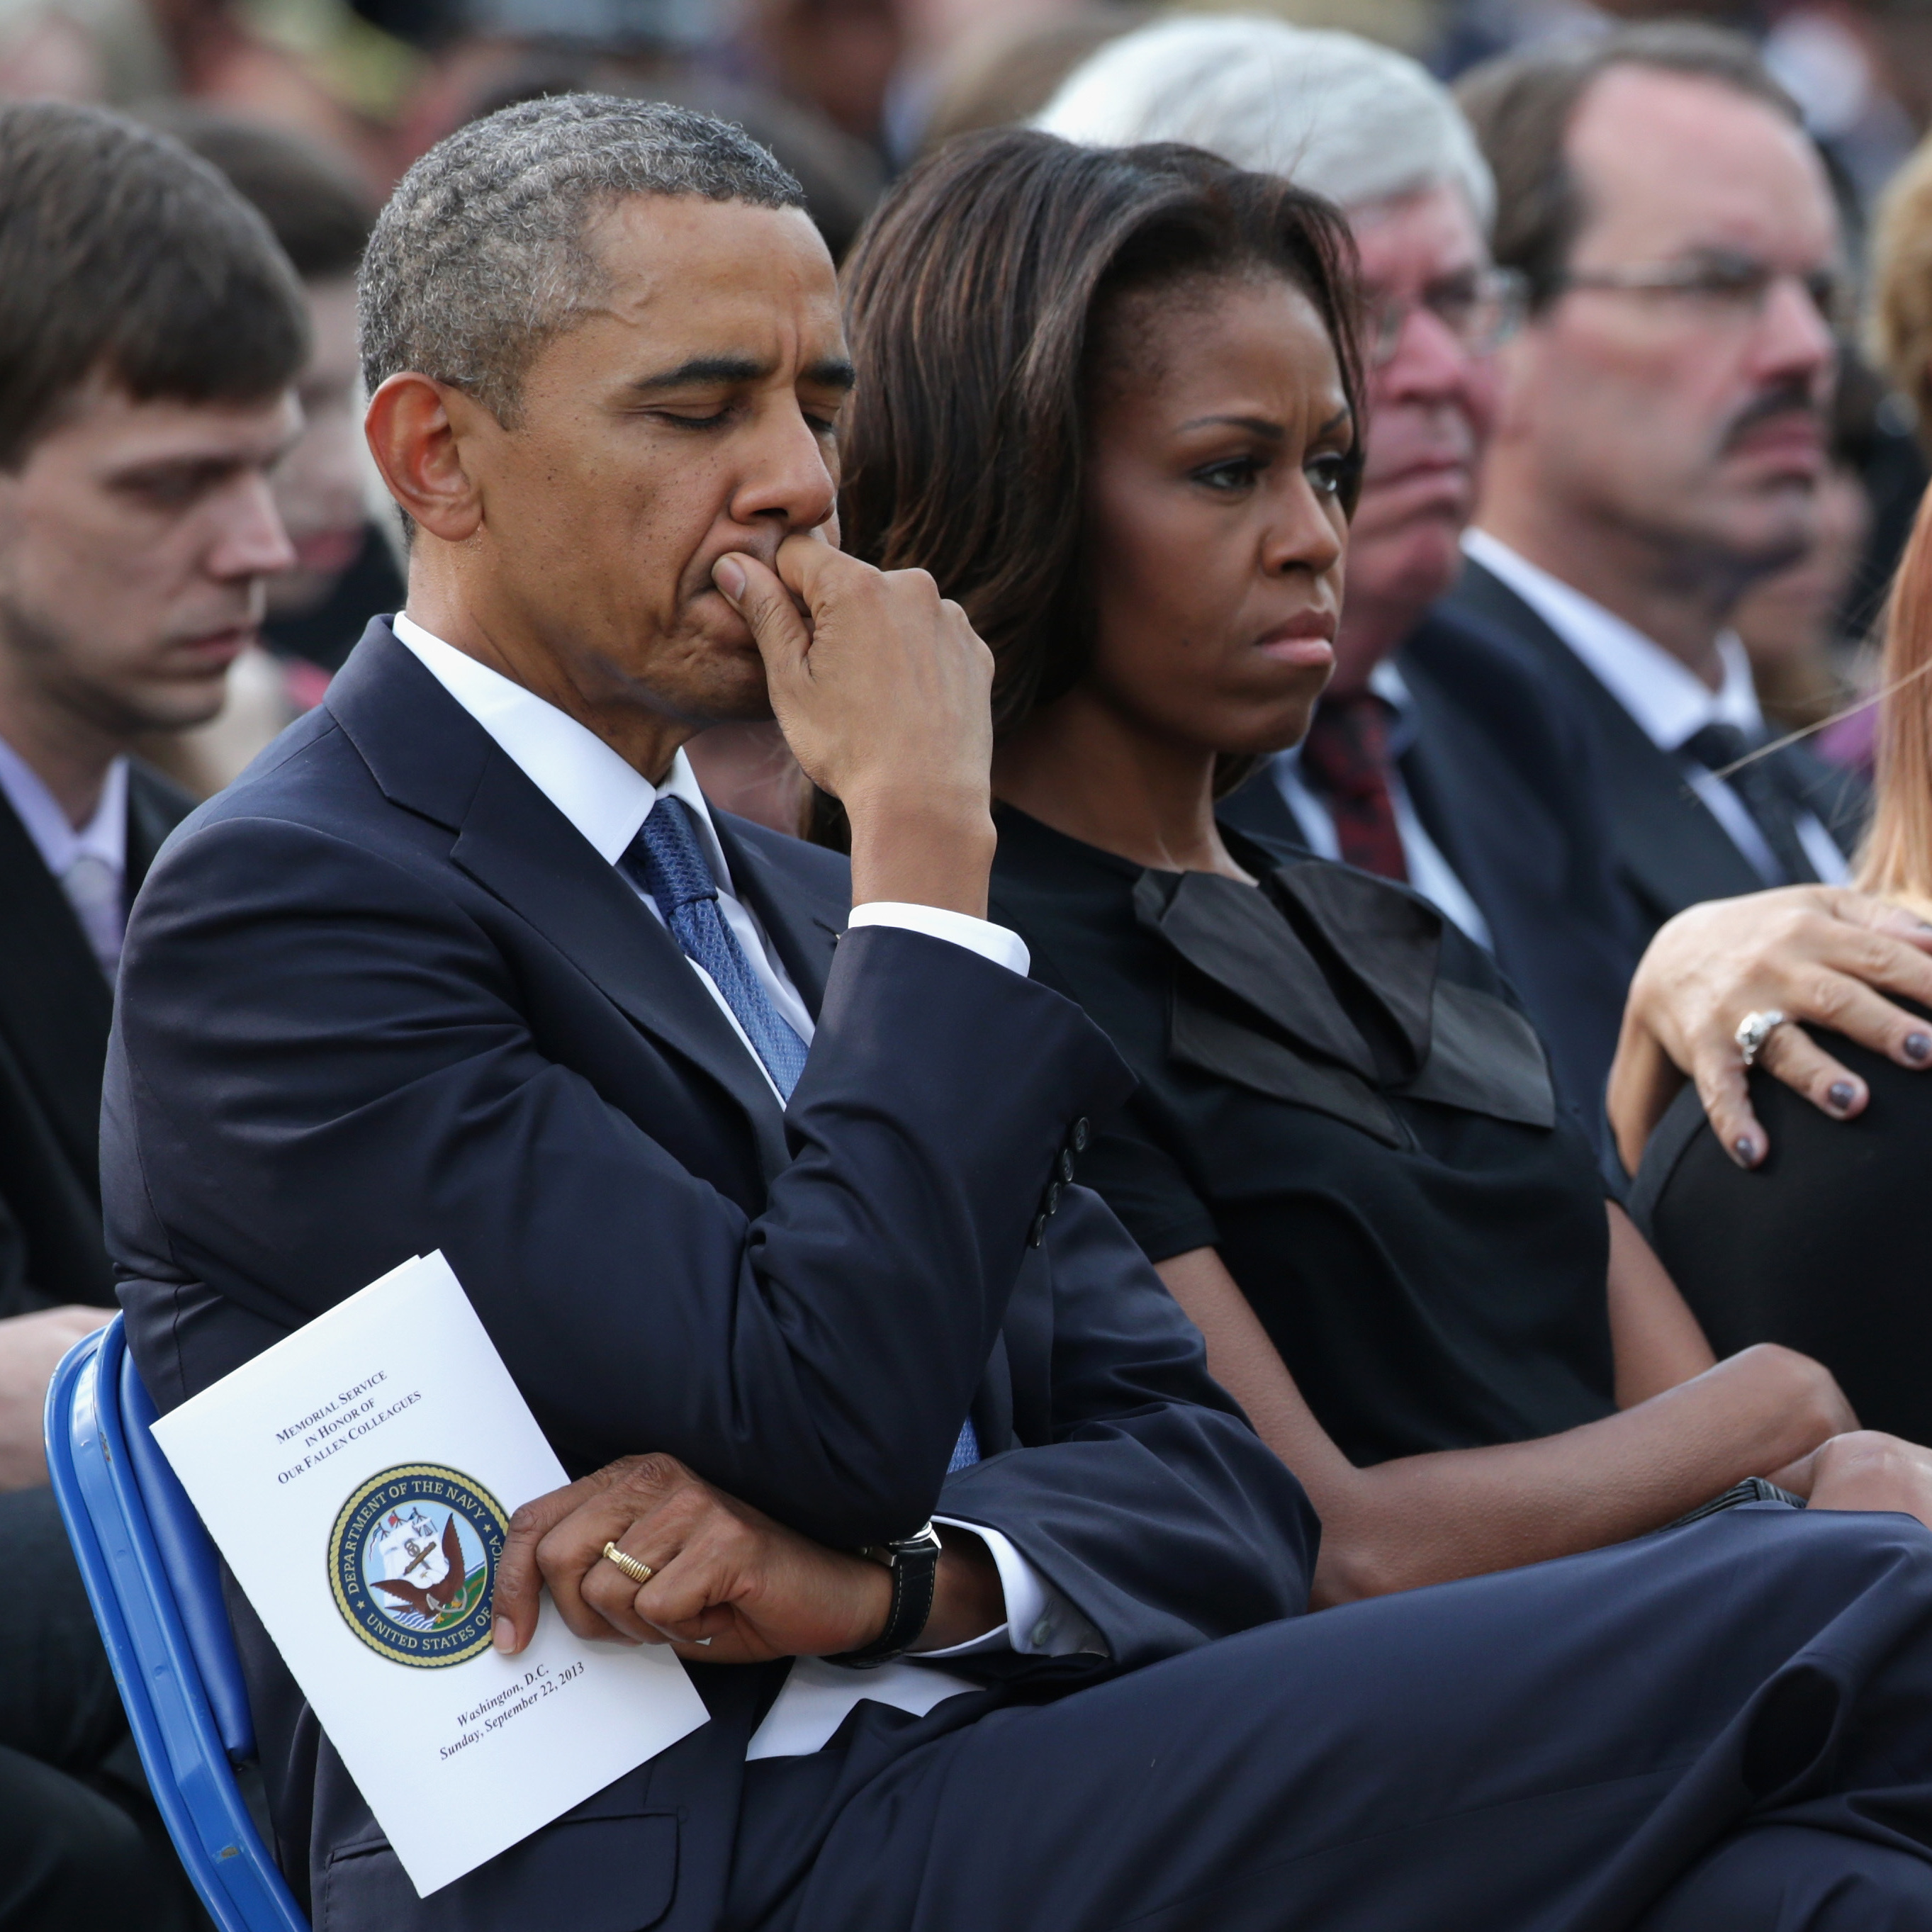 President Barack Obama and first lady Michelle Obama attend a memorial for victims of the Navy Yard shooting at the Marine barracks in Washington, D.C., on Sunday.